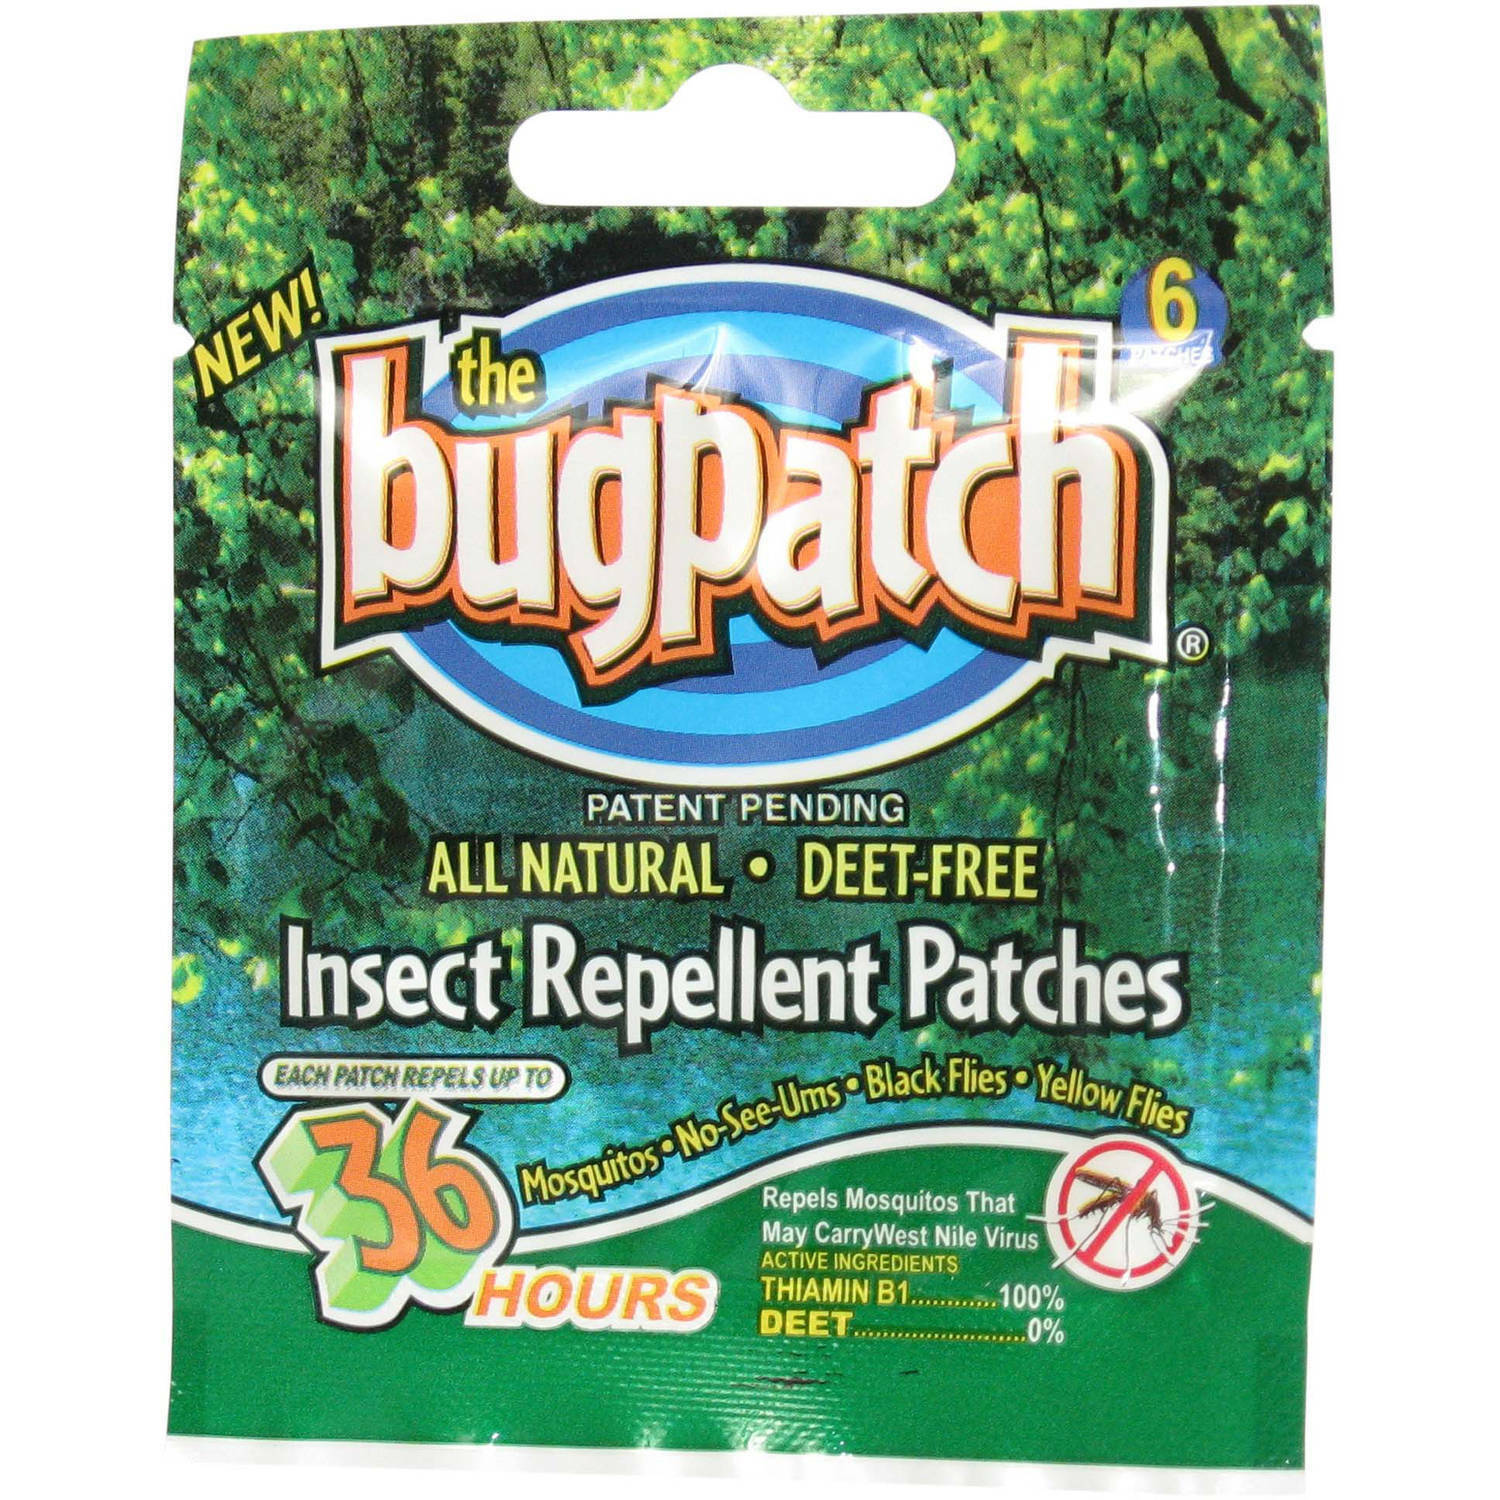 Original Bug Patch DEET FREE Insect Repellent Mosquito Flies Natural 36 Count